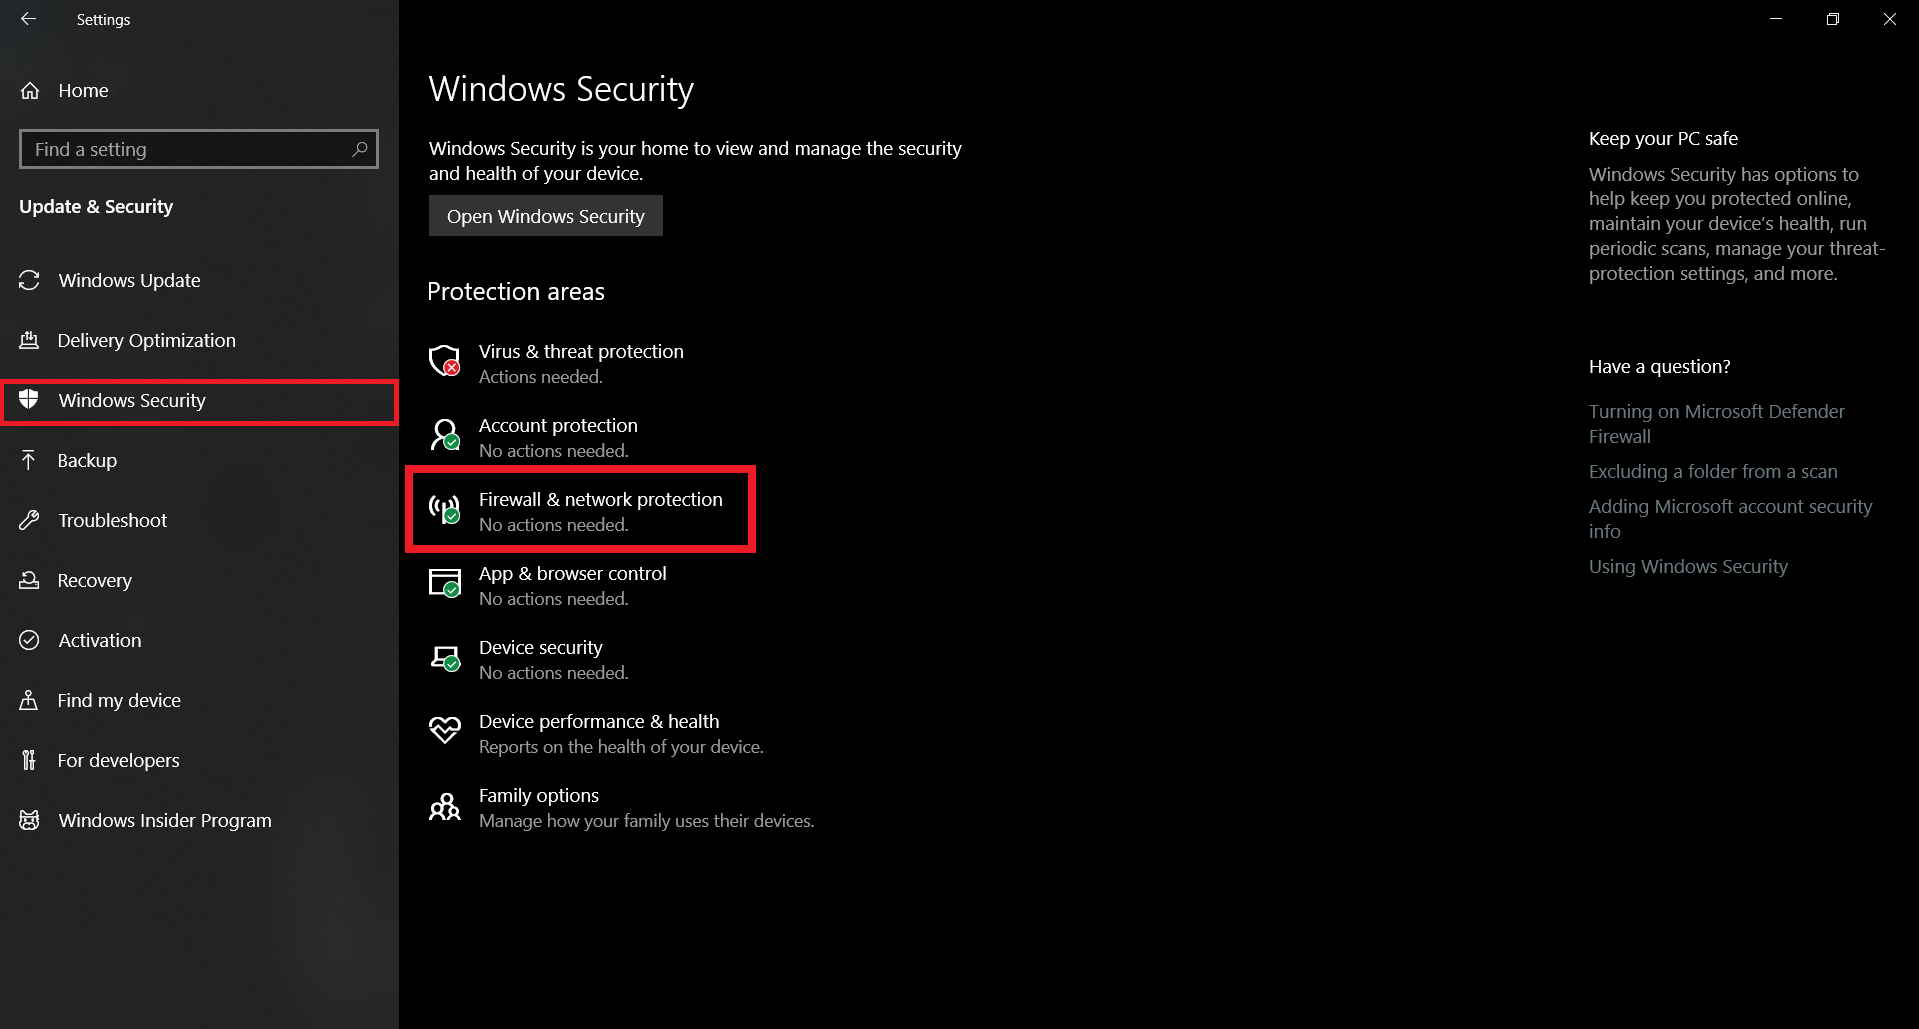 Firewall and Network Protection on Windows 10